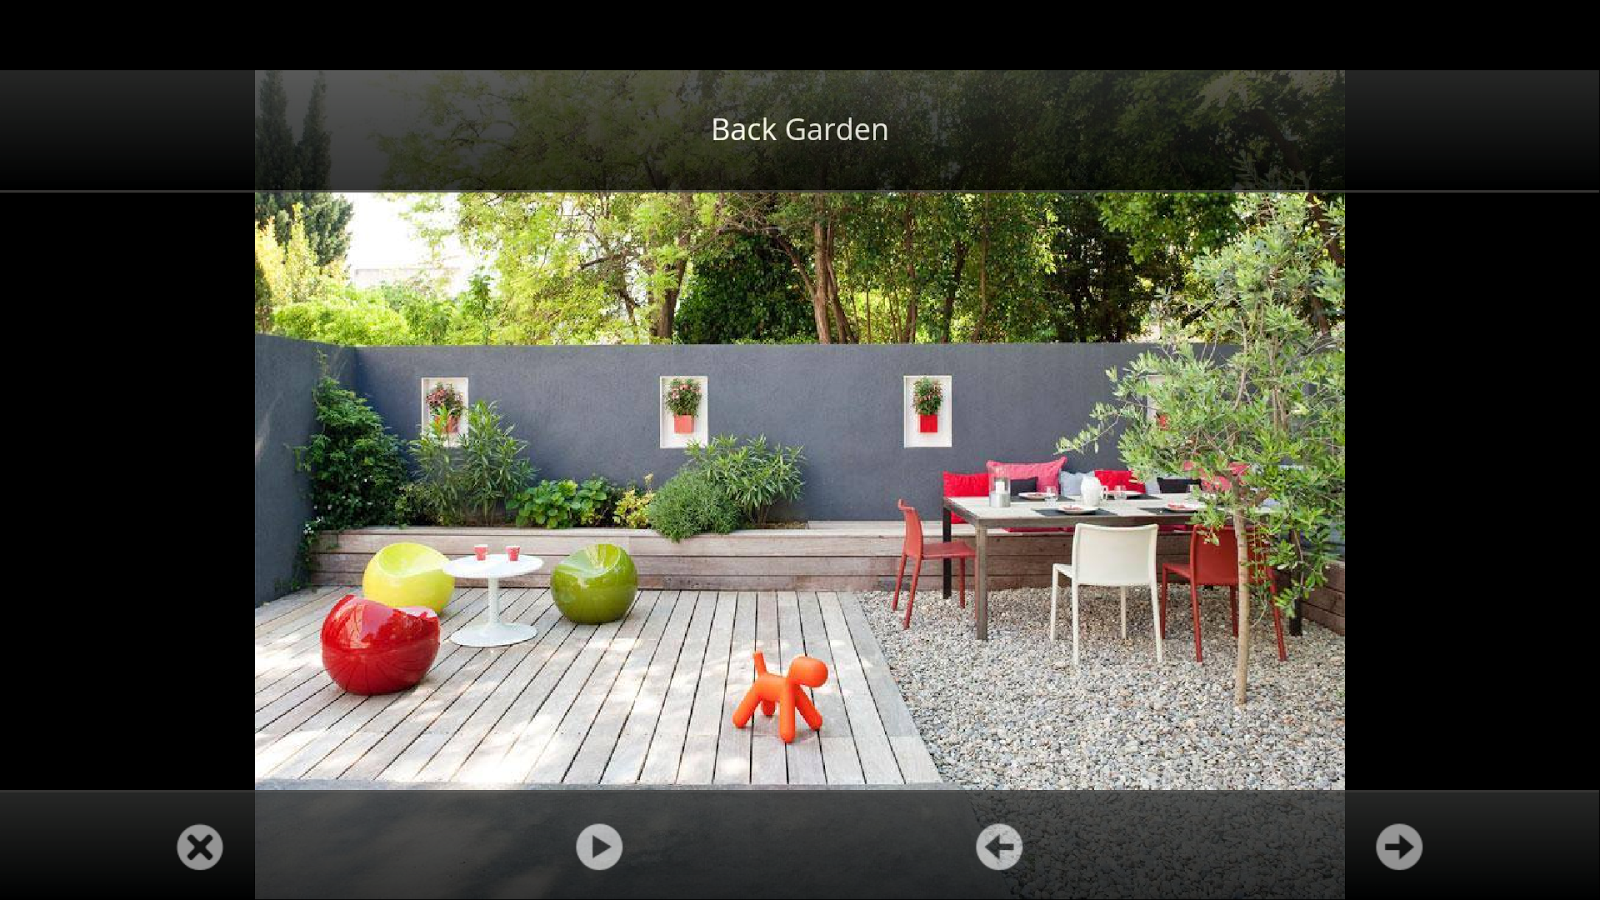 Landscape Garden Decor Android Apps on Google Play